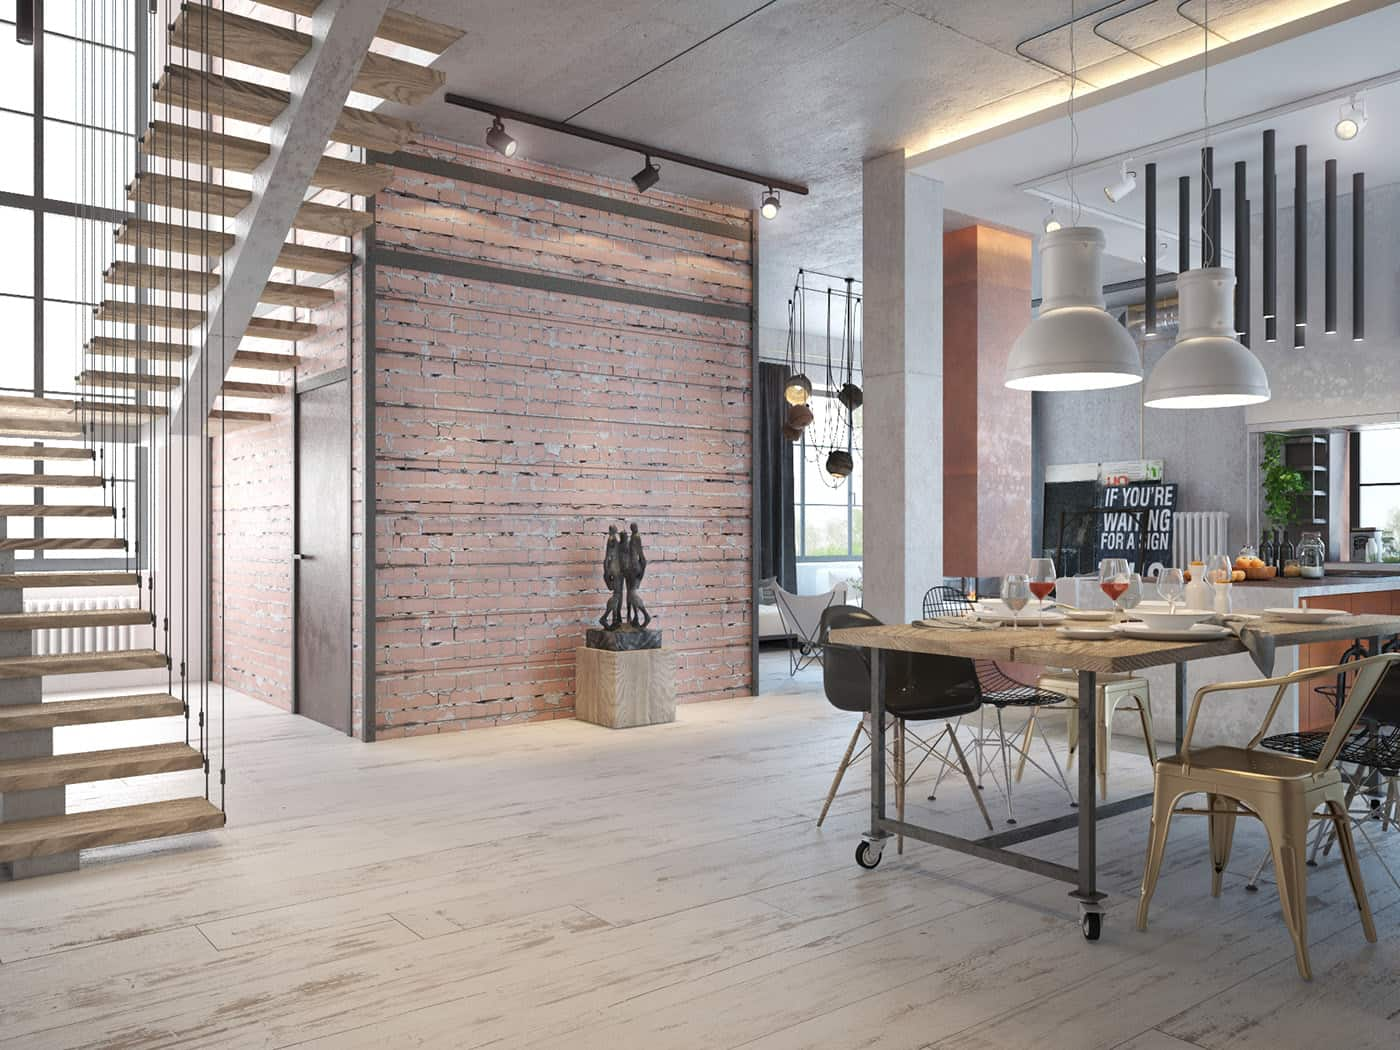 Nice wooden trimmed accent wall idea for urban style dining room area in well-lit open layout apartment with light wooden laminated floor